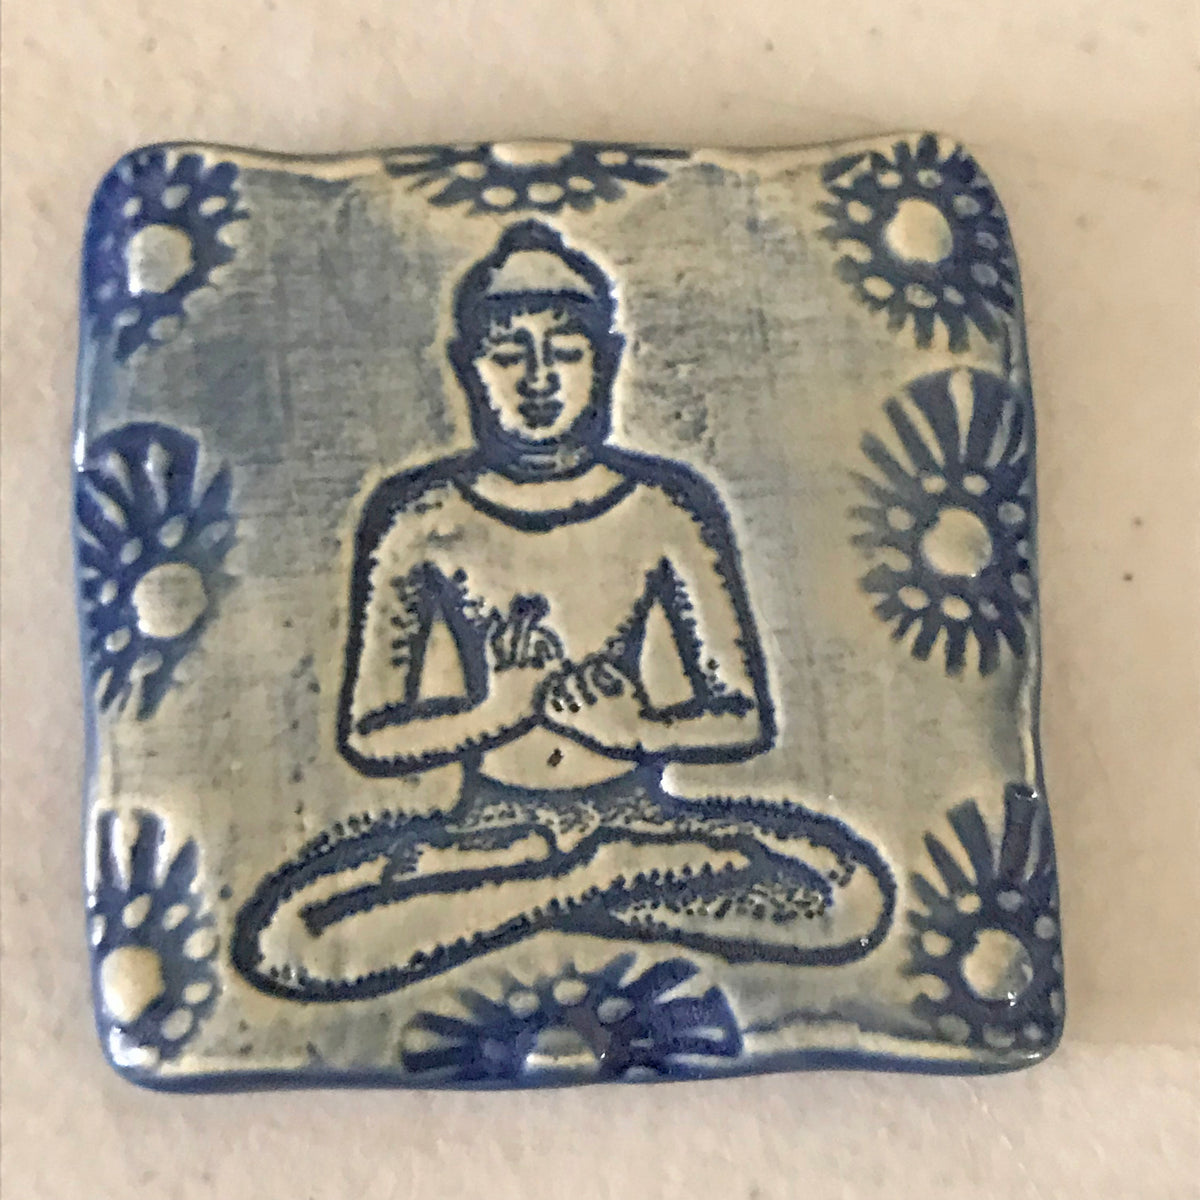 Magnet with Buddha image.  Handmade and created by the artisans of Oerth Studio.